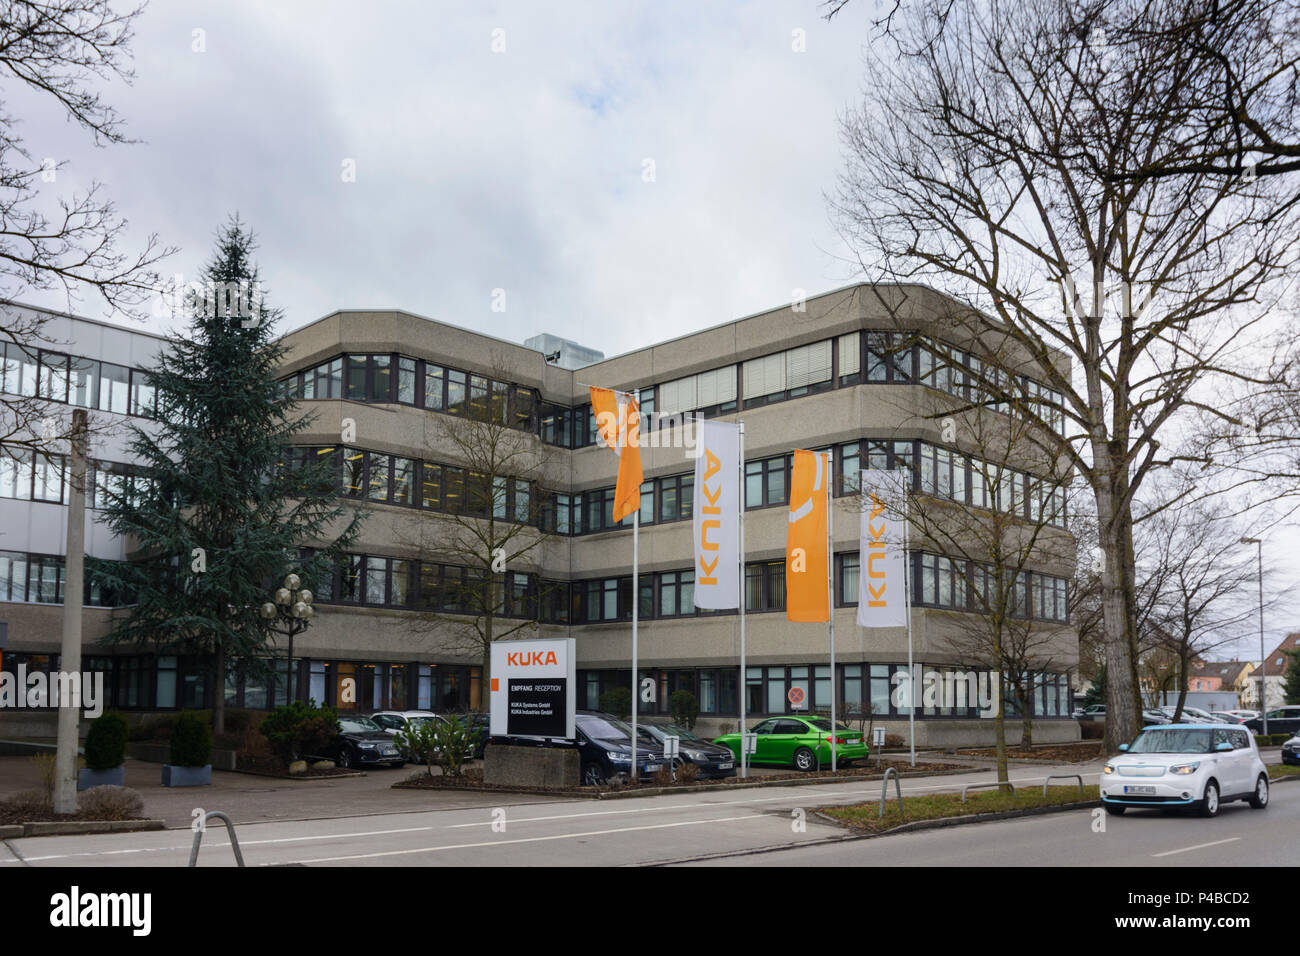 Augsburg, company Kuka reception for KUKA Industries, KUKA Systems, Swabia, Bavaria, Germany Stock Photo